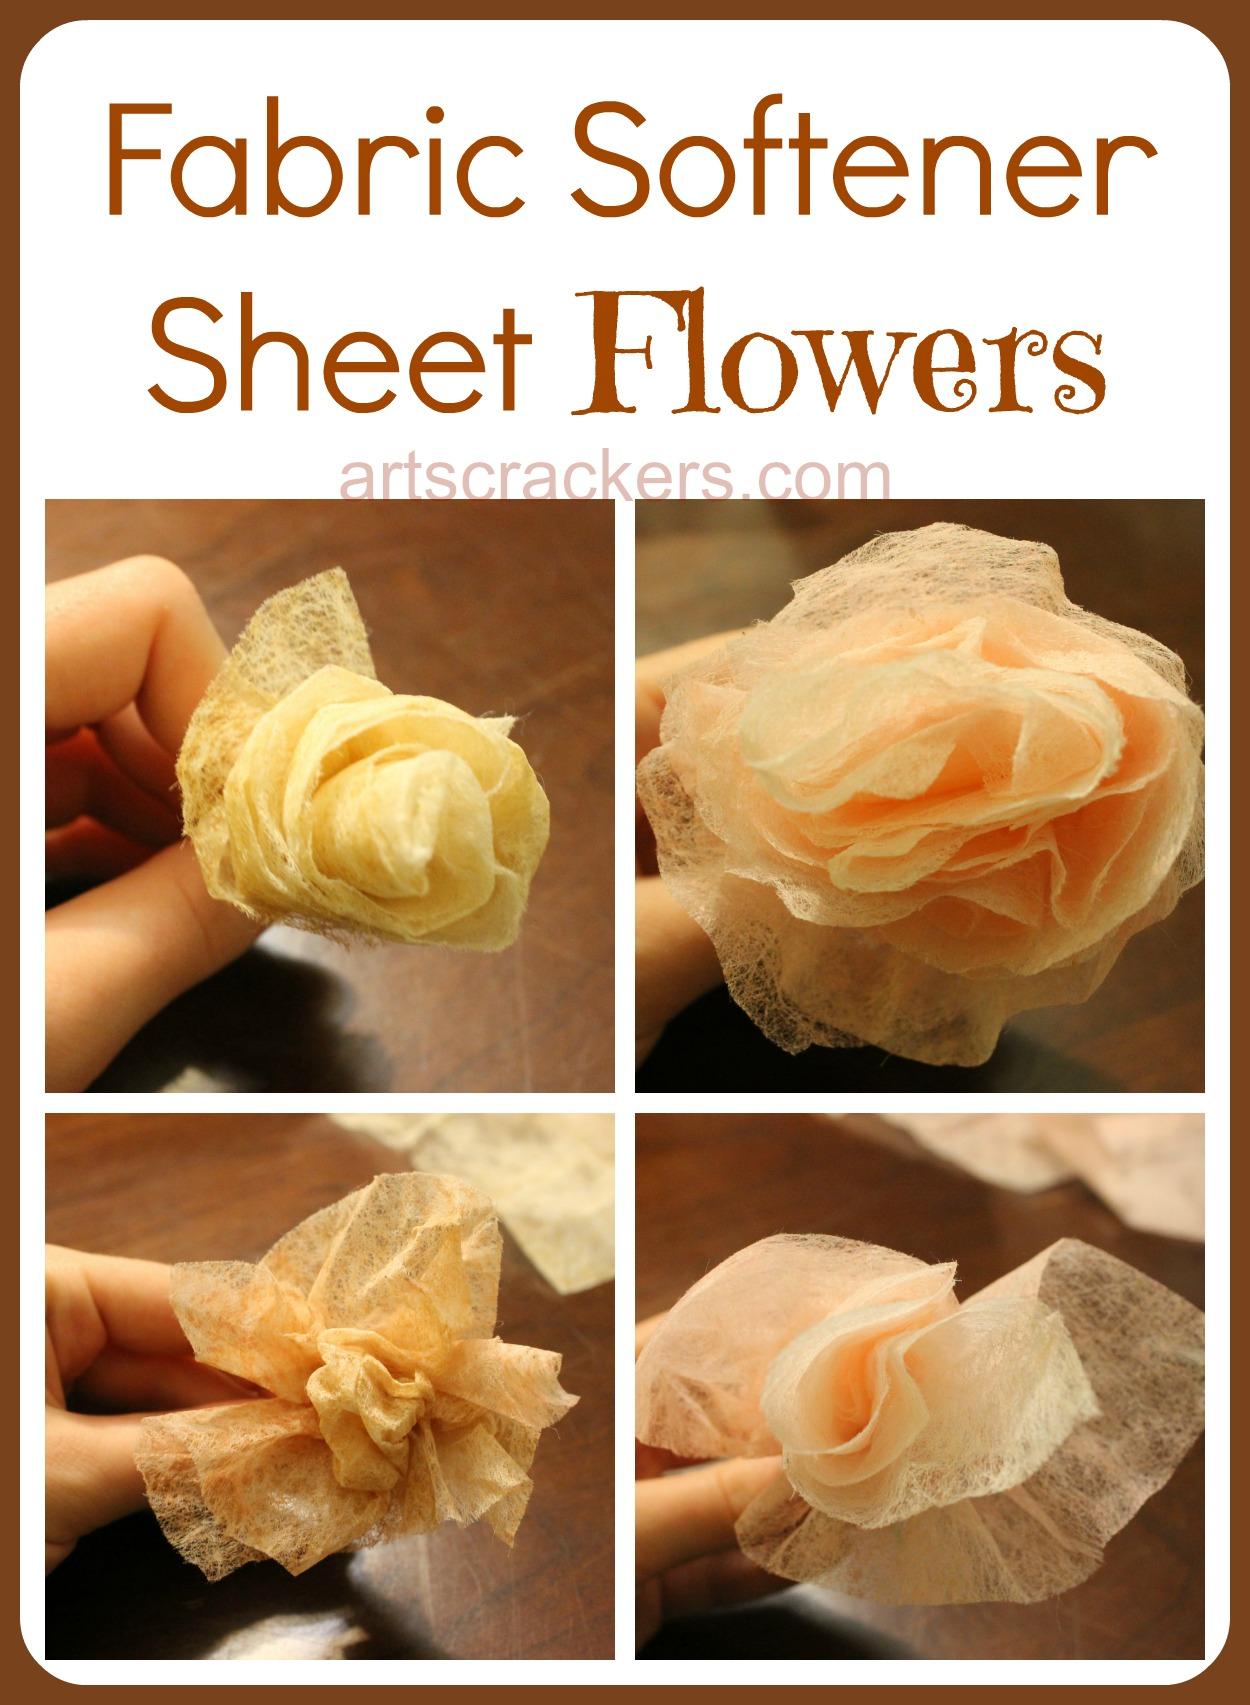 Fabric Softener Sheet Flowers Tutorial. Click the picture to view the tutorial.